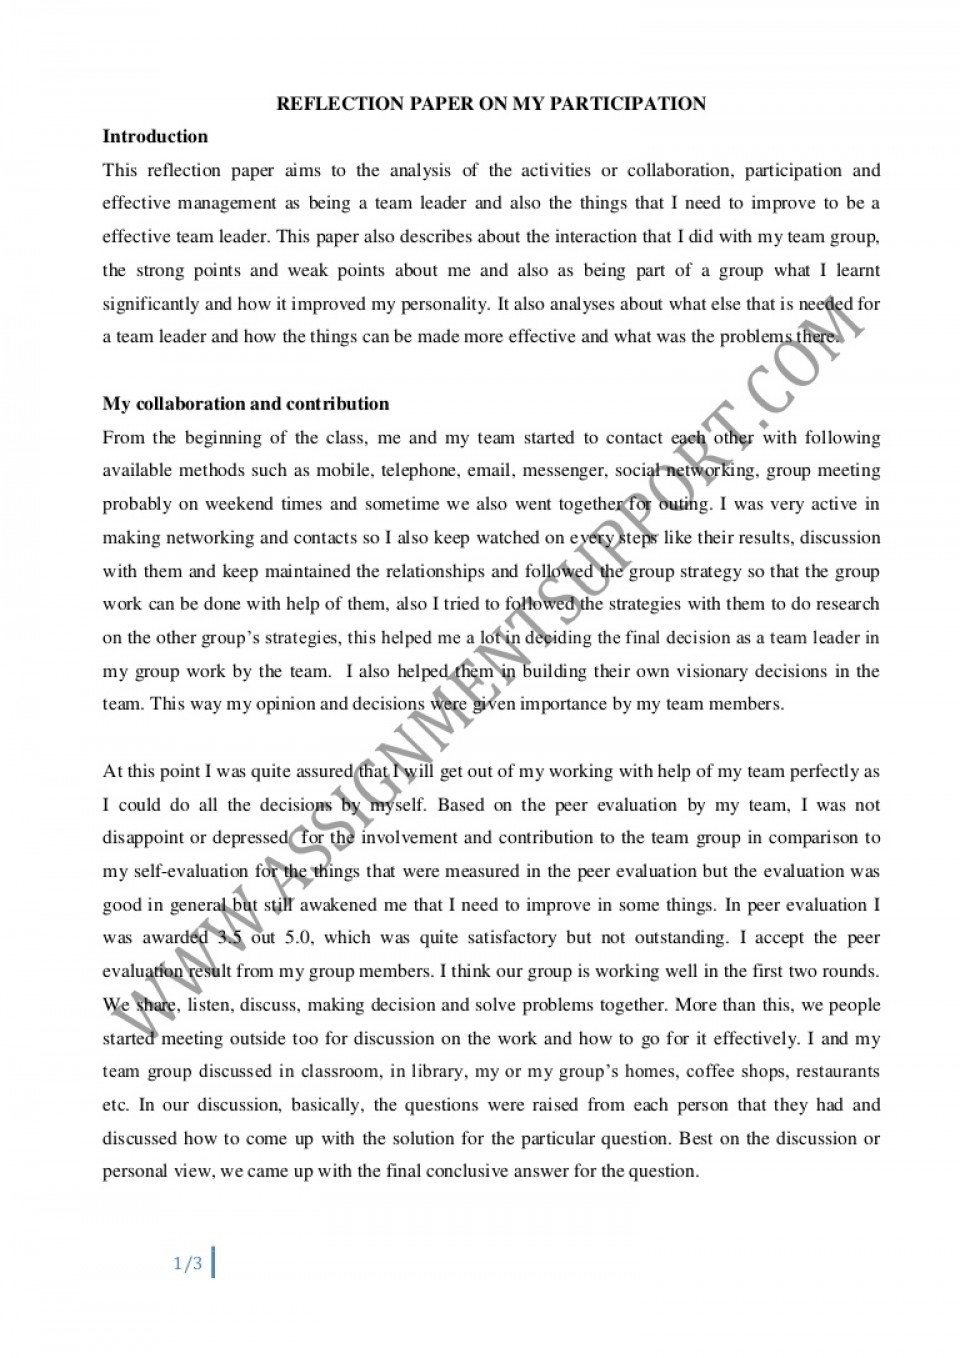 004 Essay Example Reflective Reflectiveessay Phpapp02 Thumbnail Amazing Introduction English 101 Rubric 960